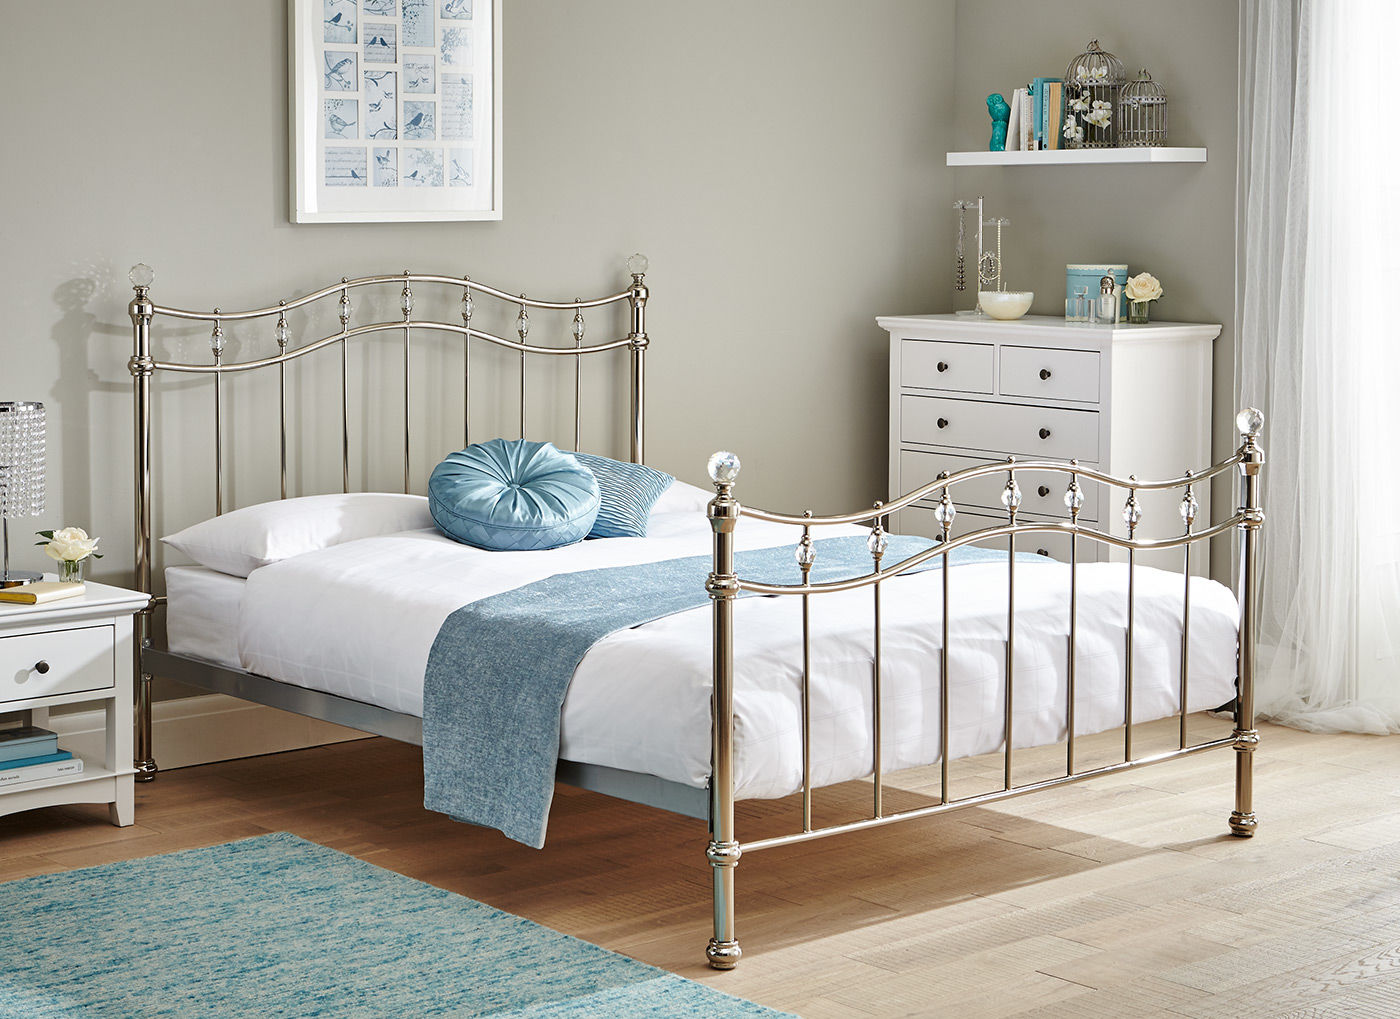 Louis Chrome Metal Bed Frame 4 6 Double Silver Bed Sava